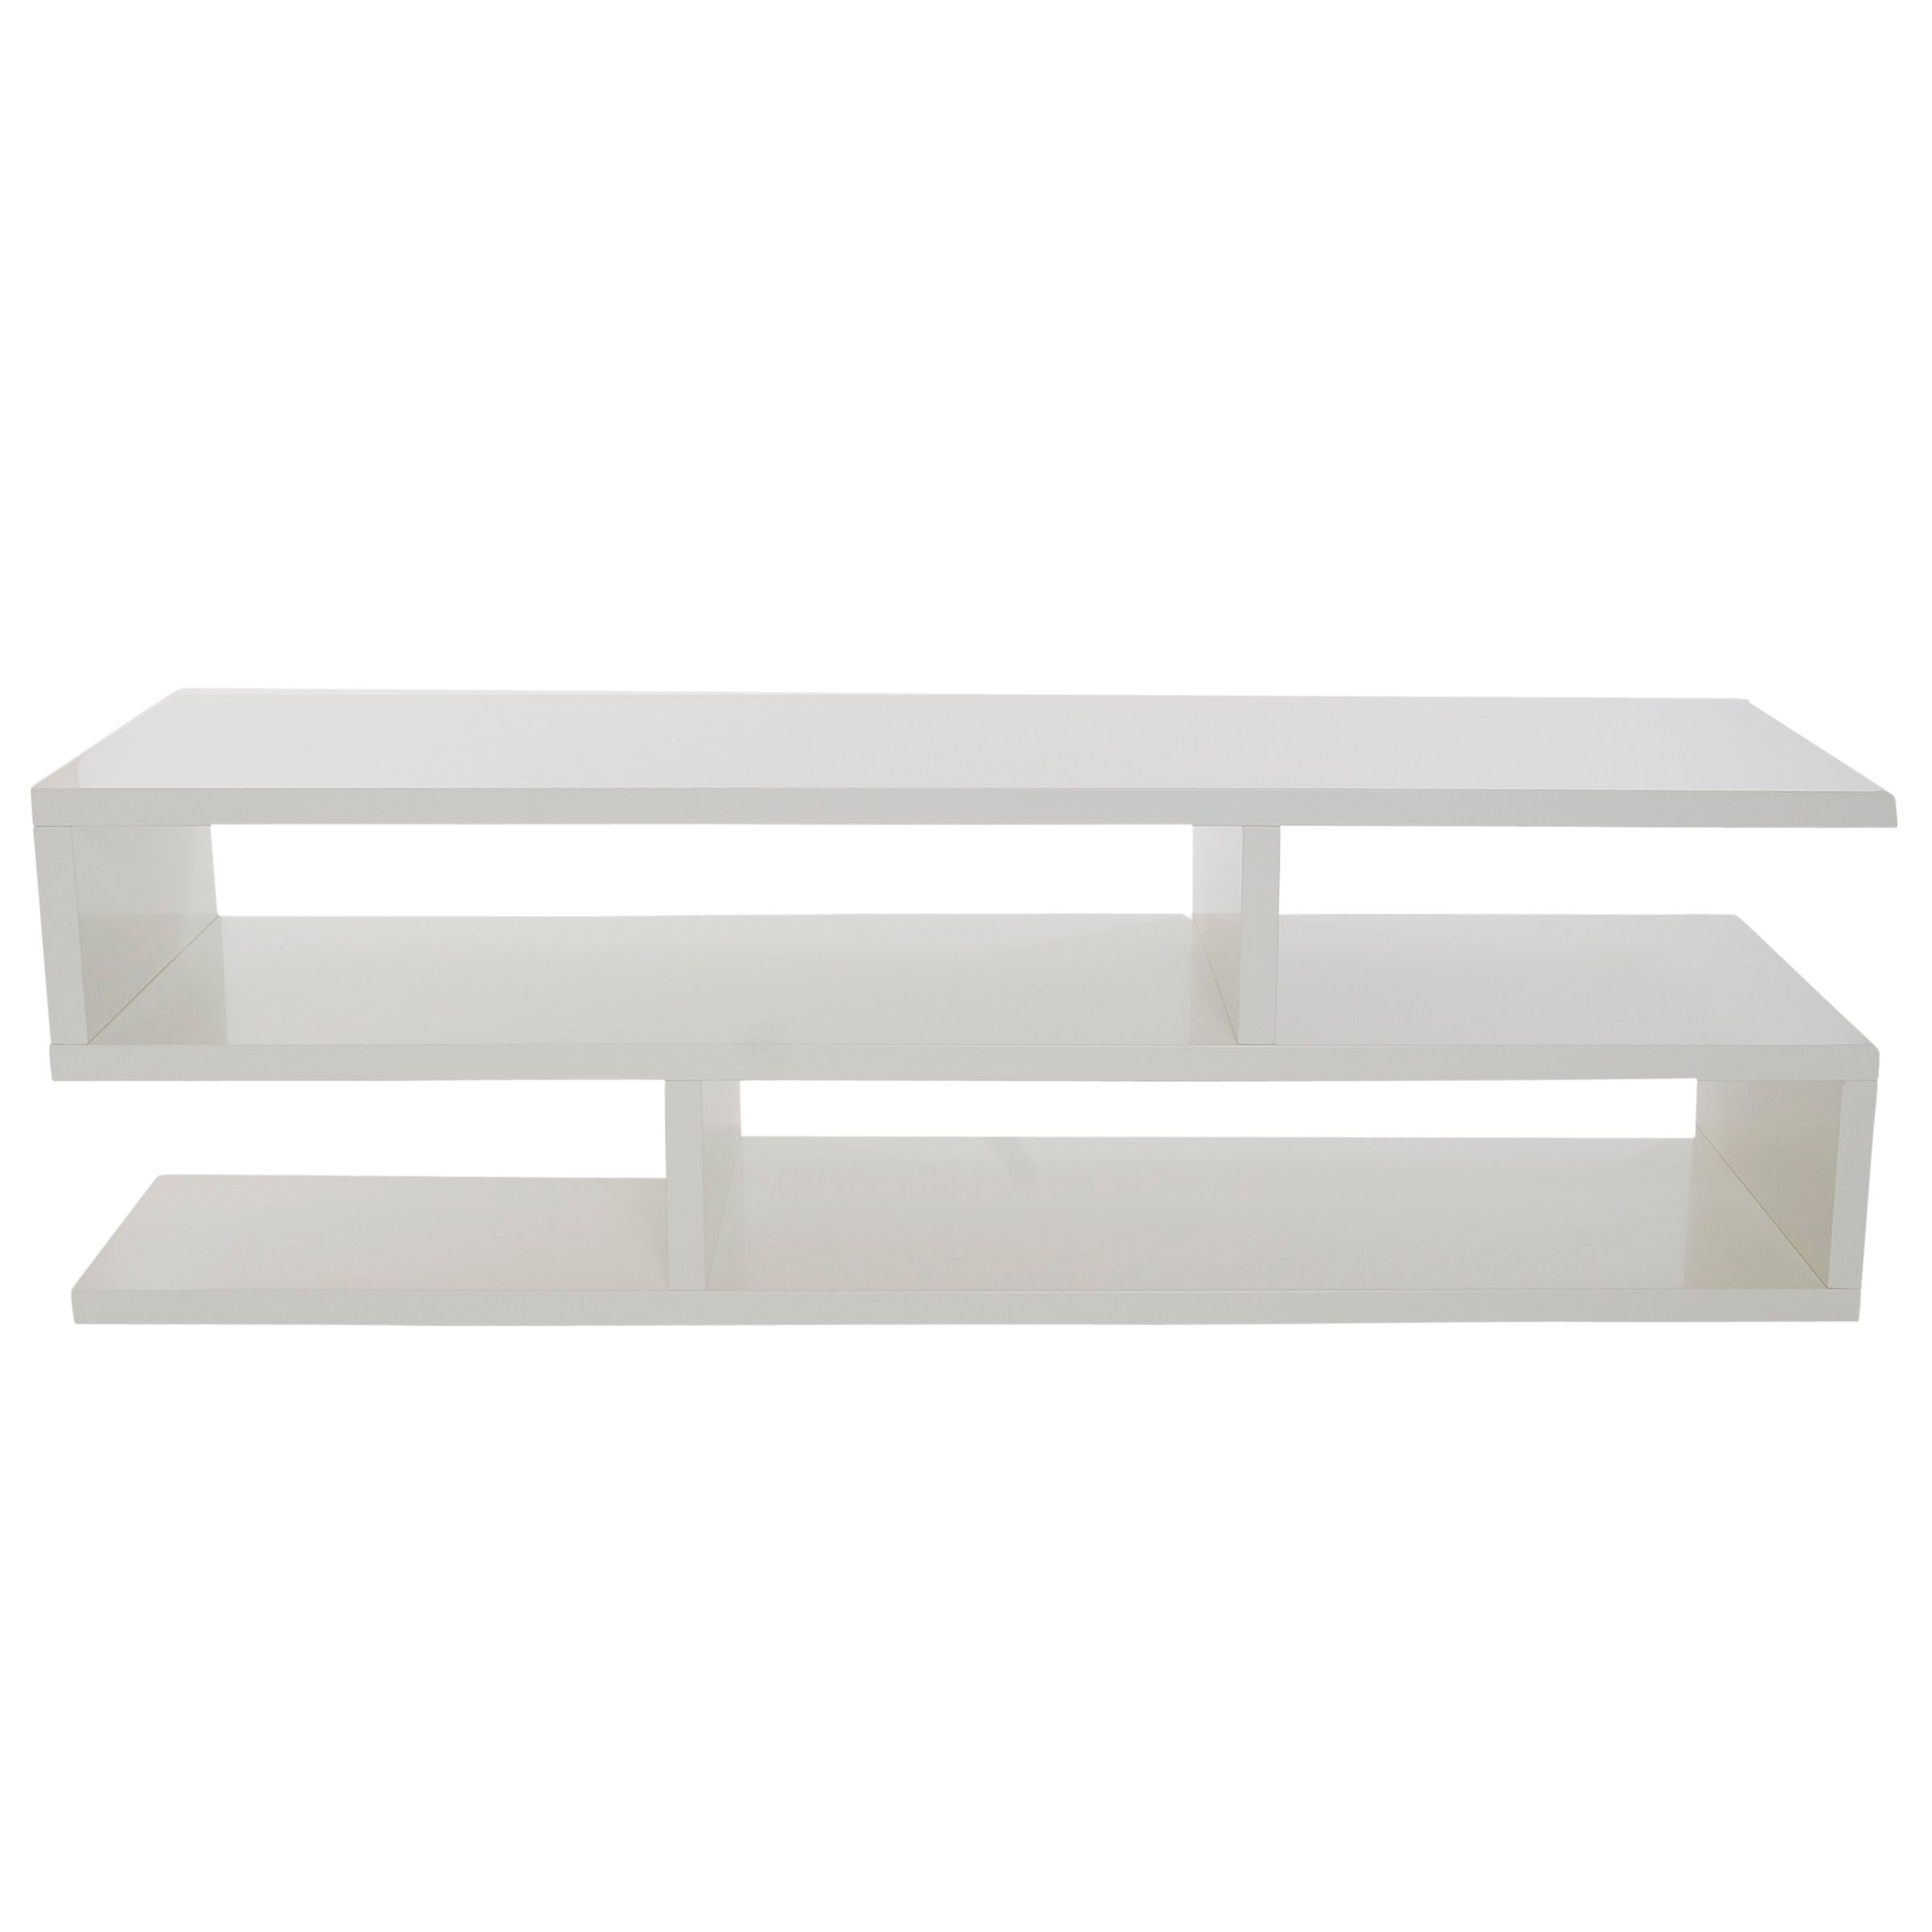 Content by Conran Balance Coffee Table, White at John Lewis